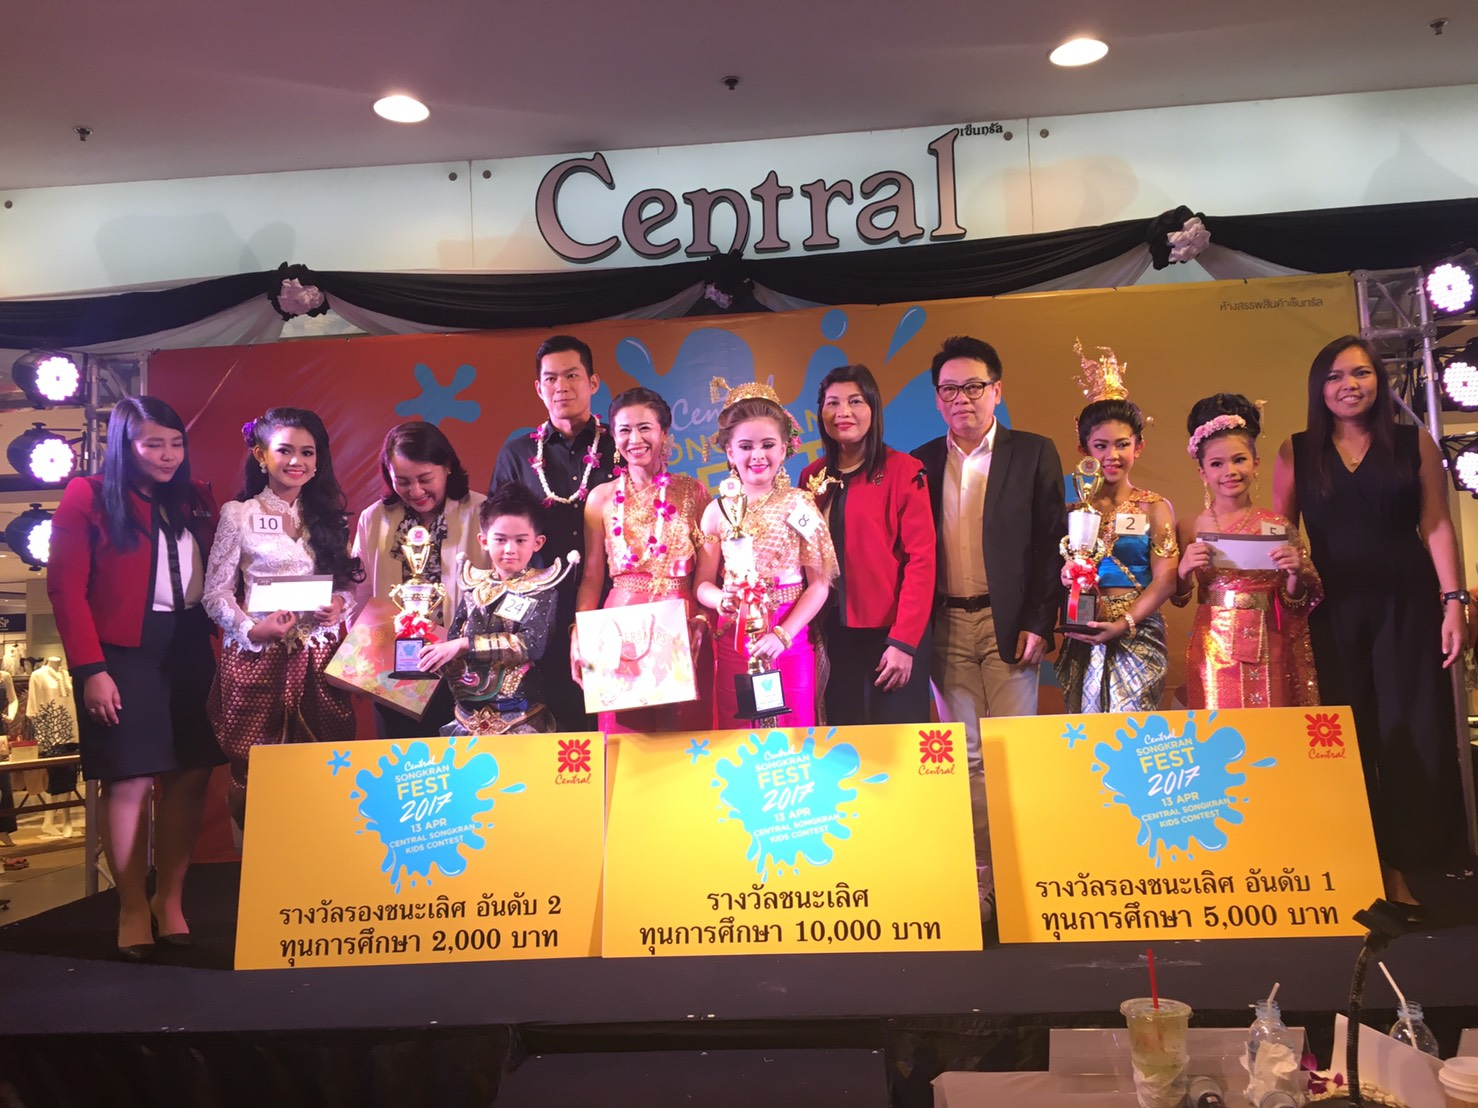 Winners, judges and sponsors take the stage at the end of the contest.